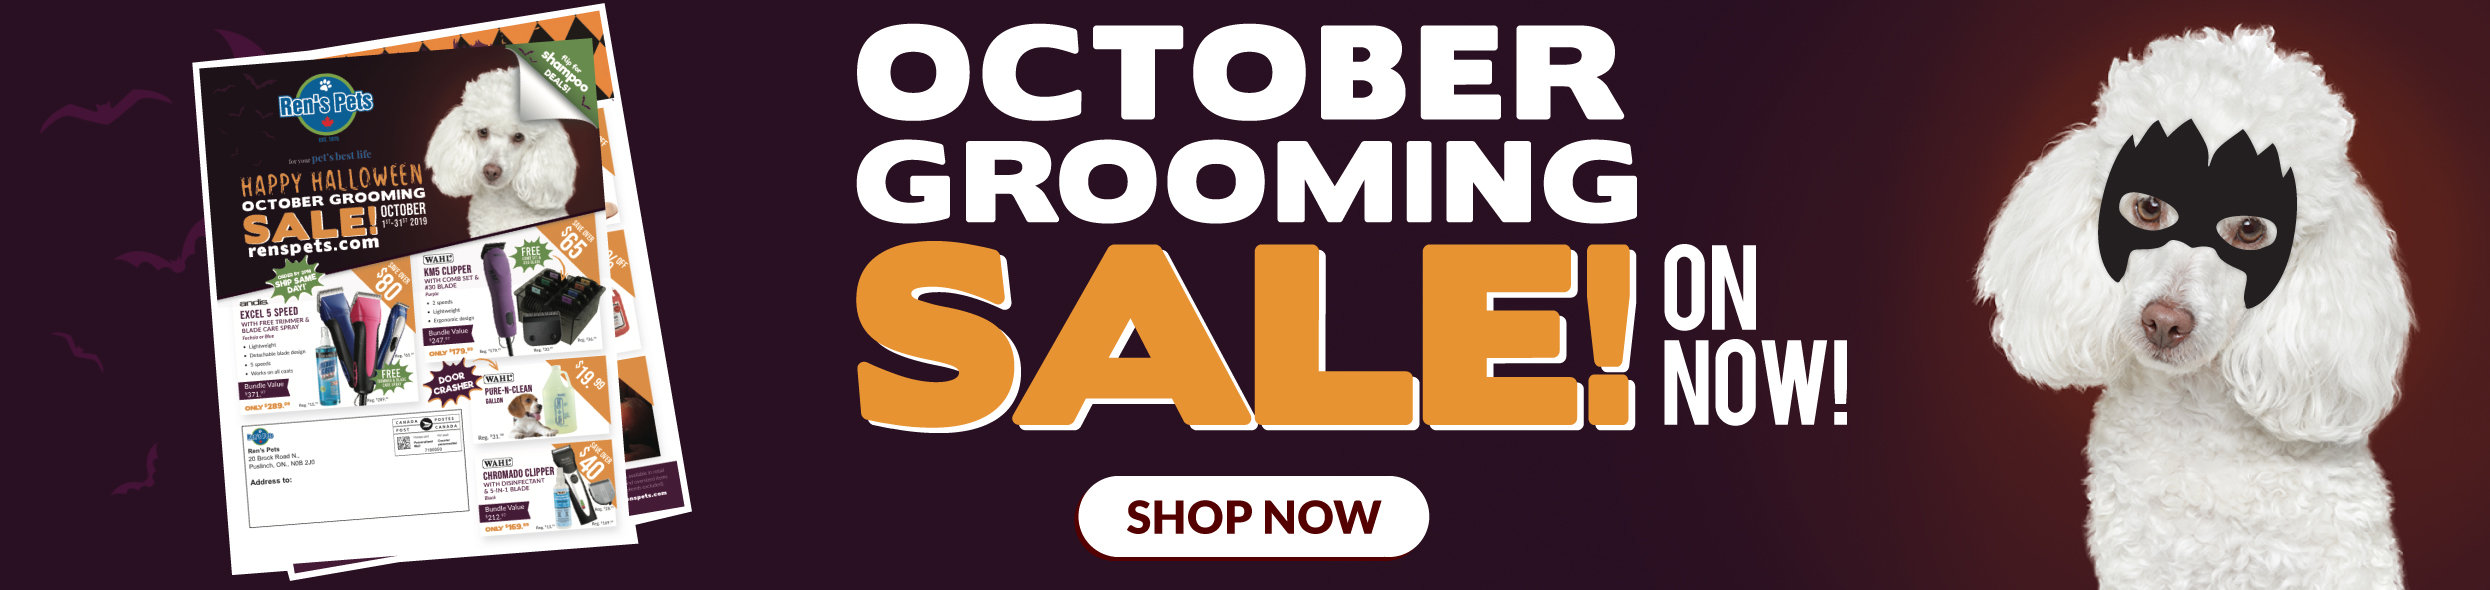 October Grooming Sale